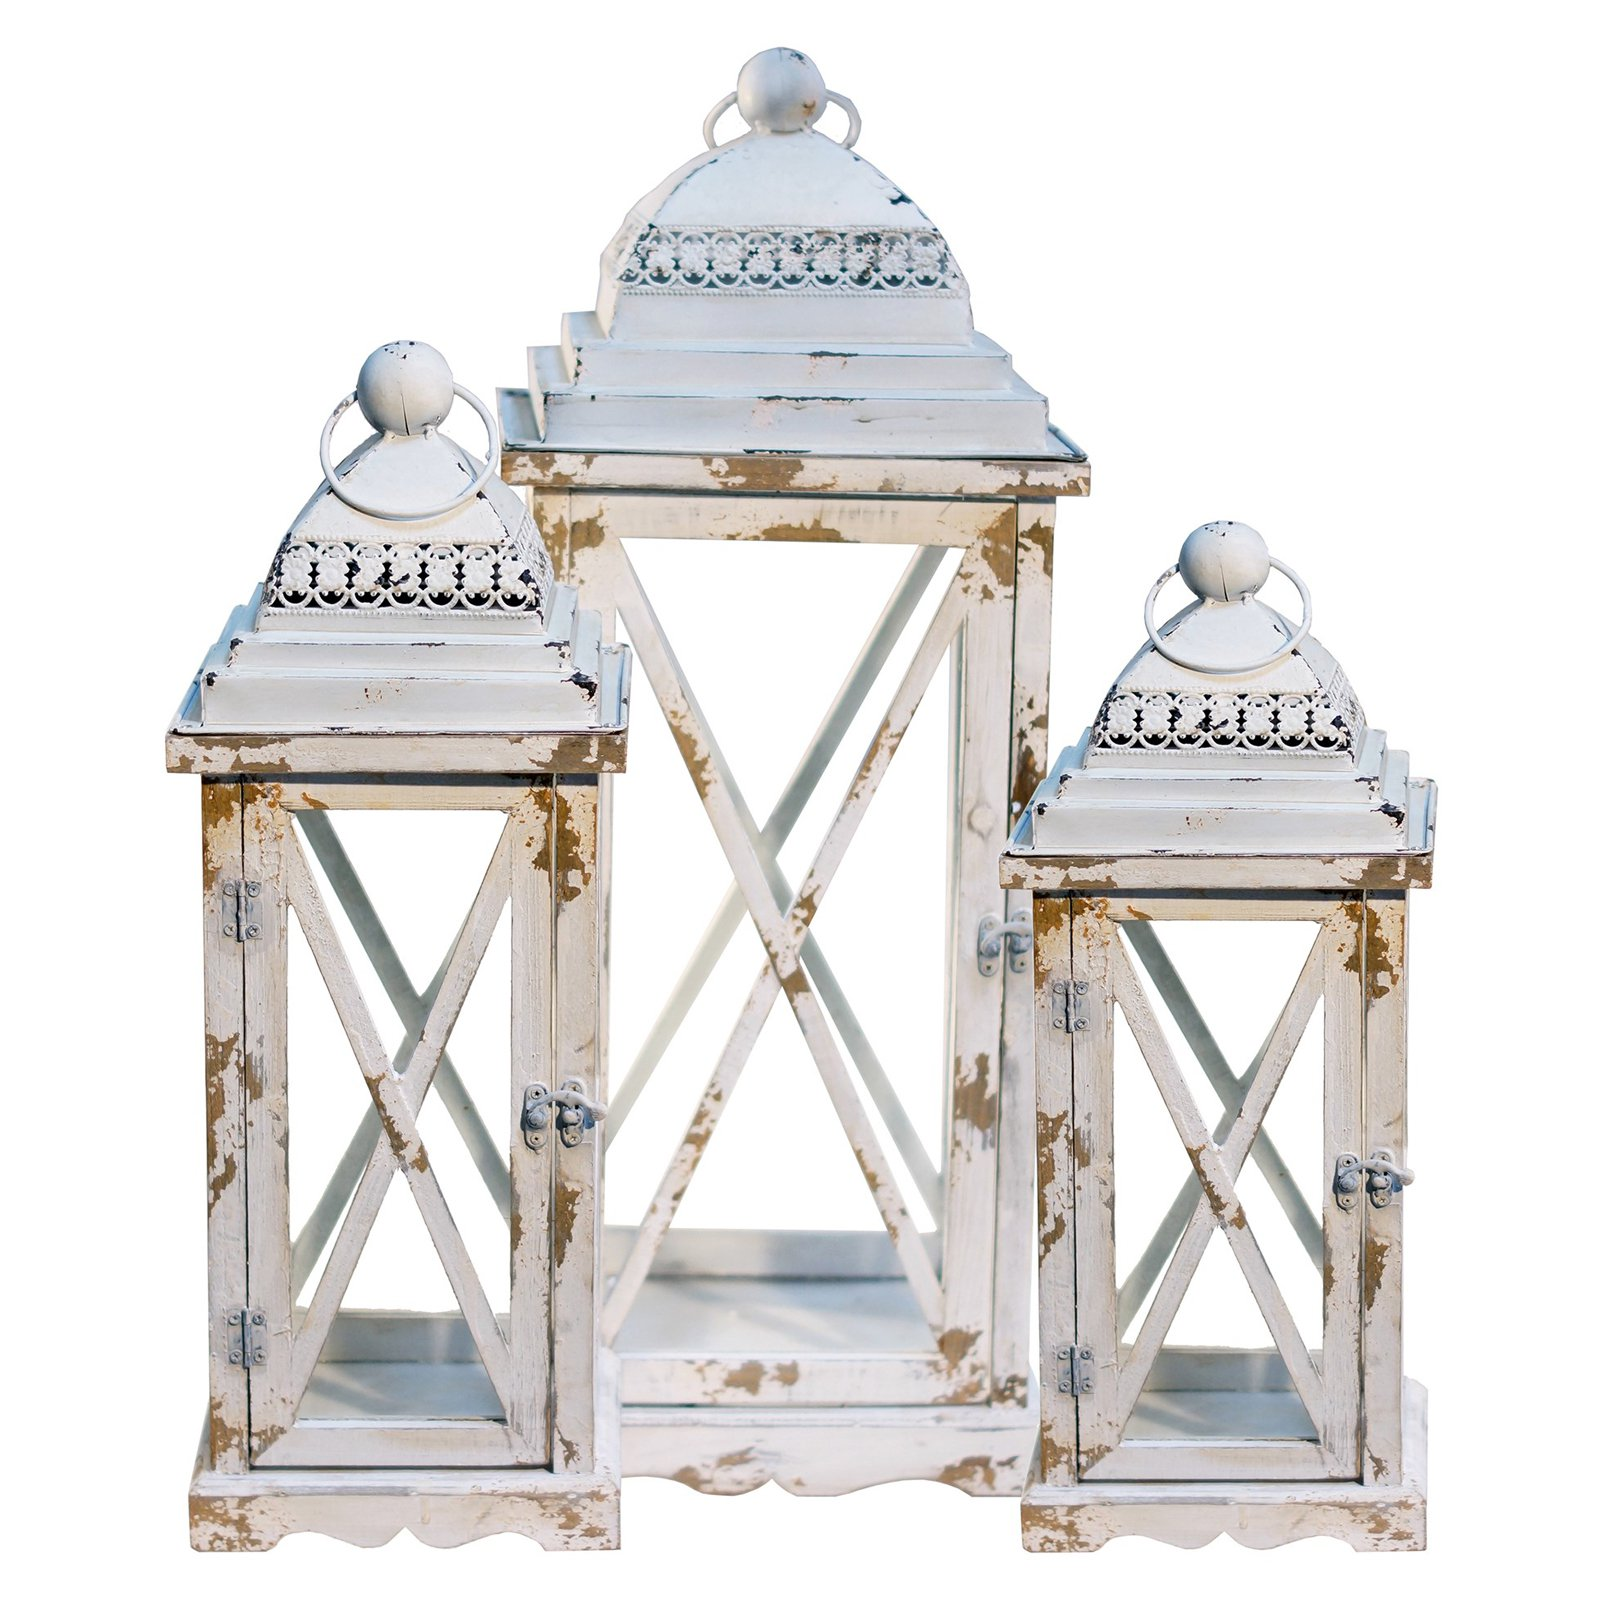 American Mercantile 3 Piece Weathered Metal Lantern Set